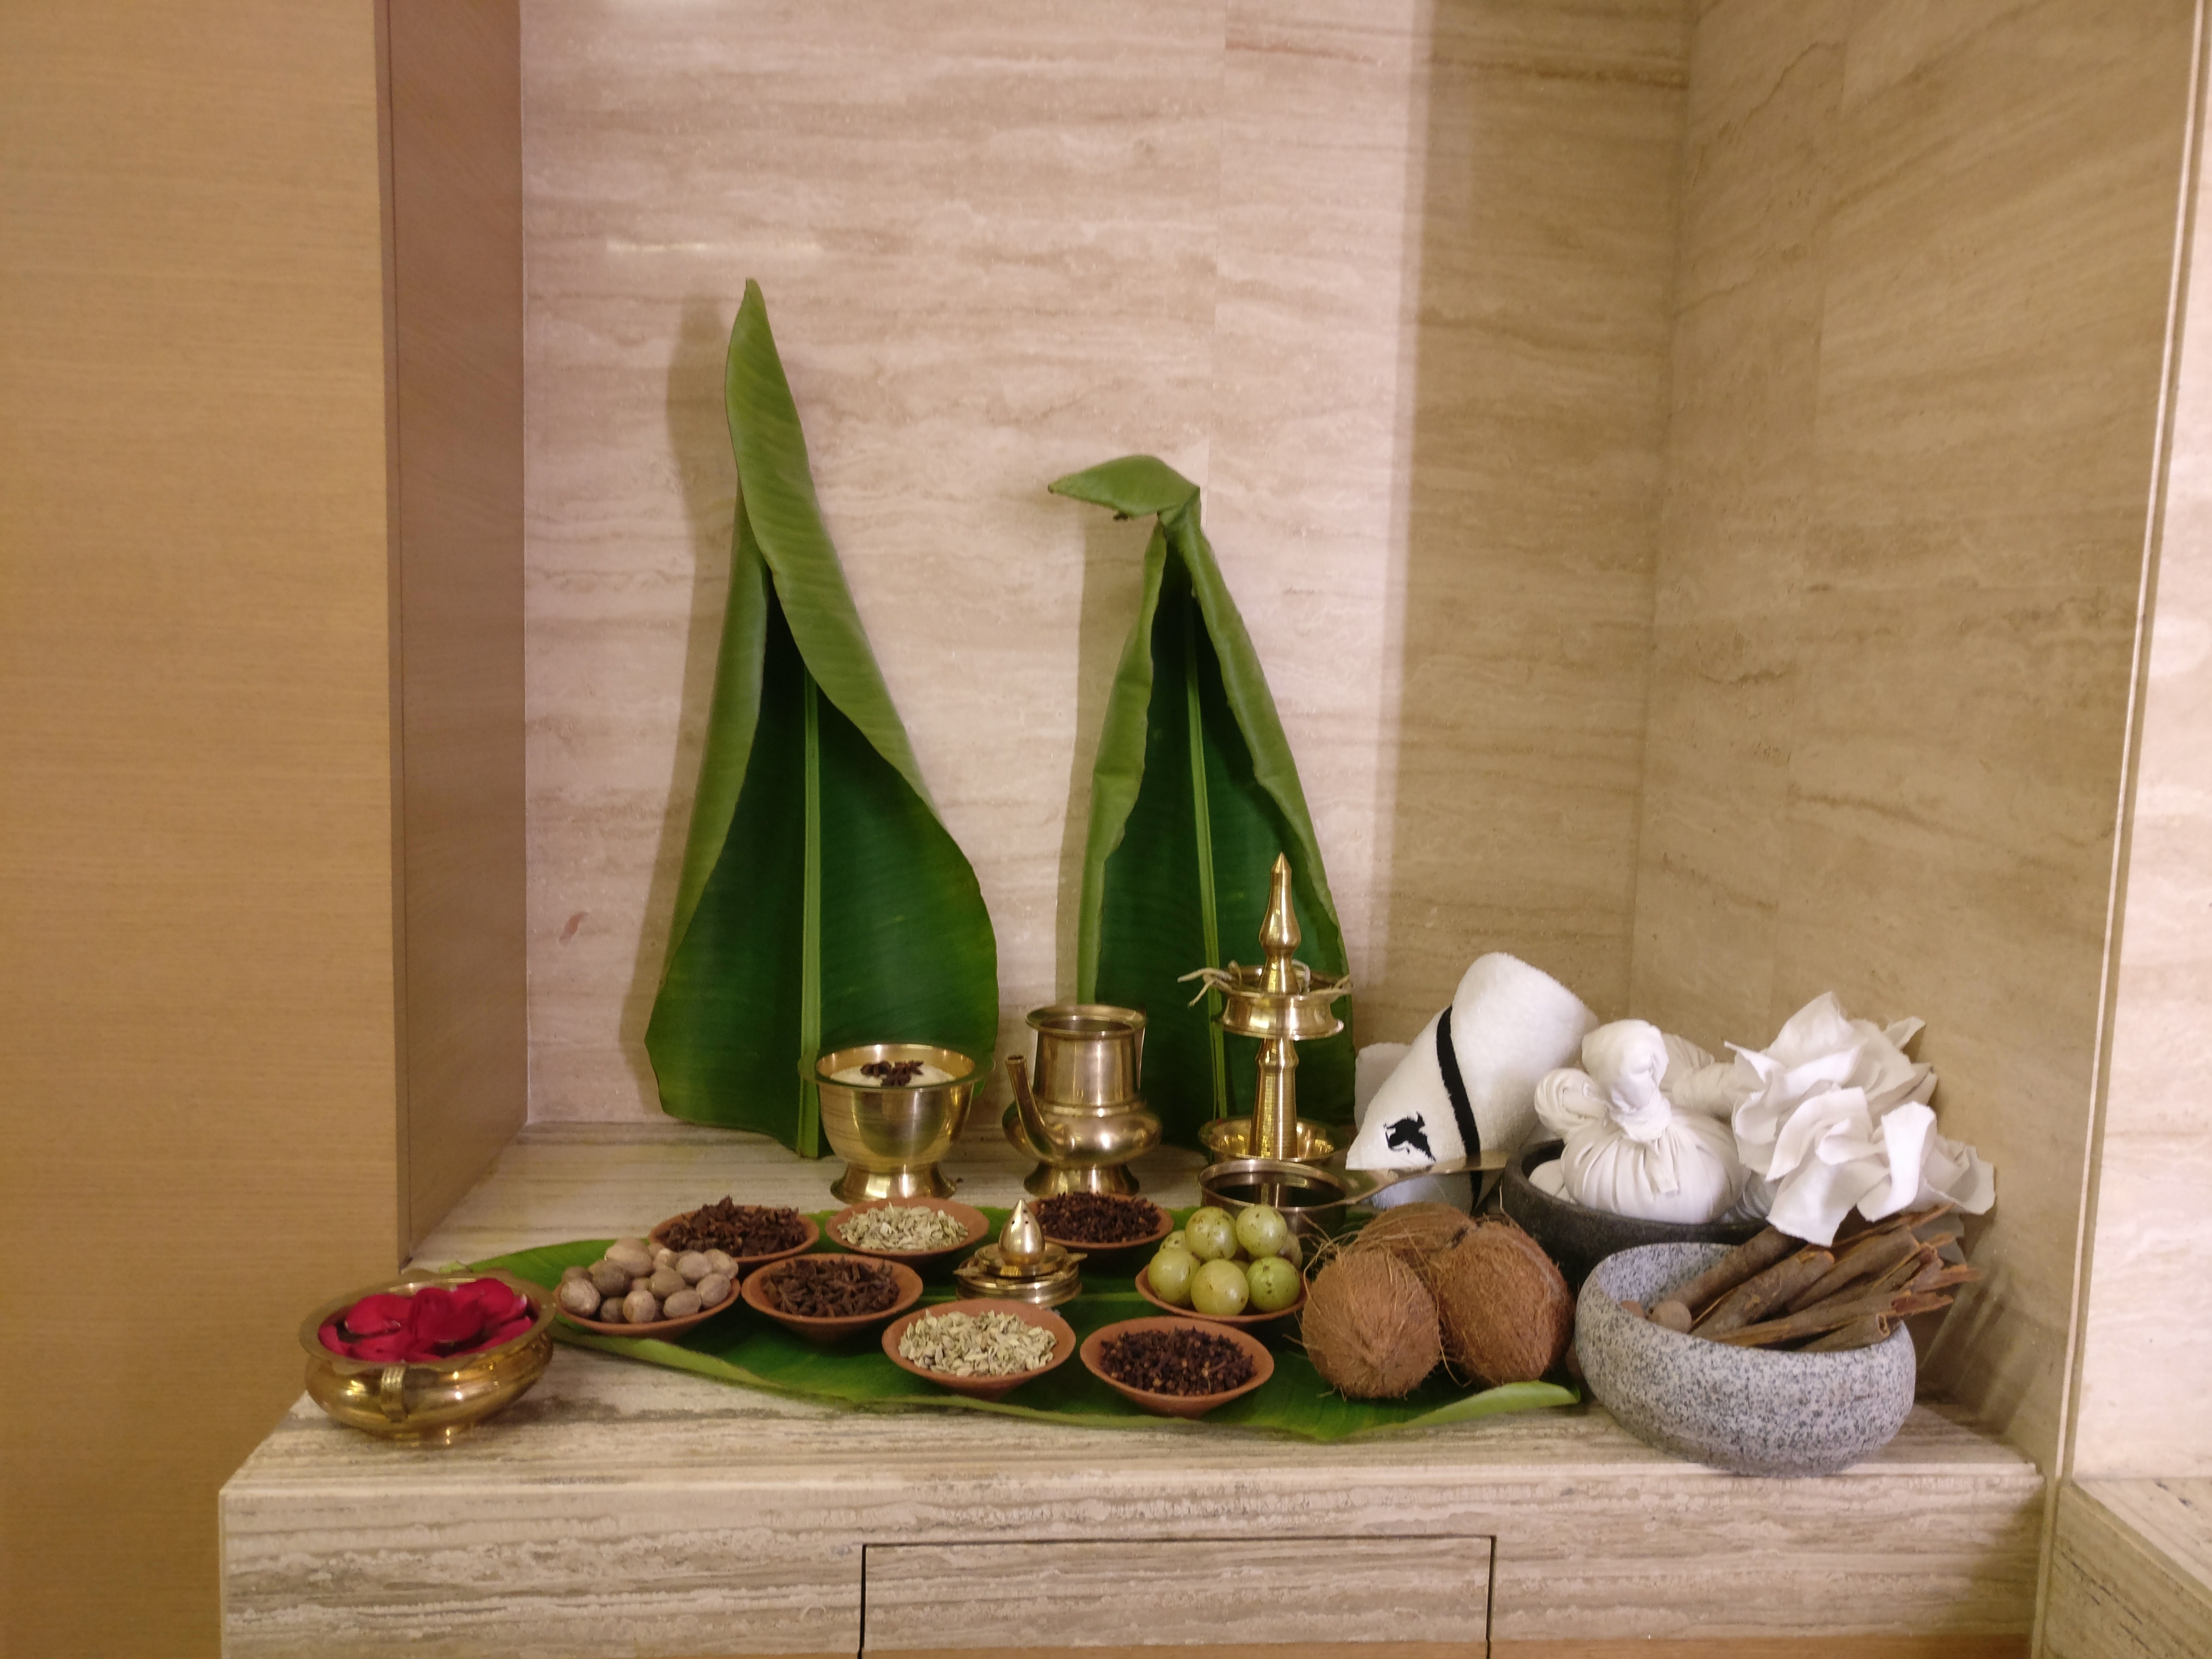 Natural herbs and Ayurvedic concoction laid out on a table in the spa room